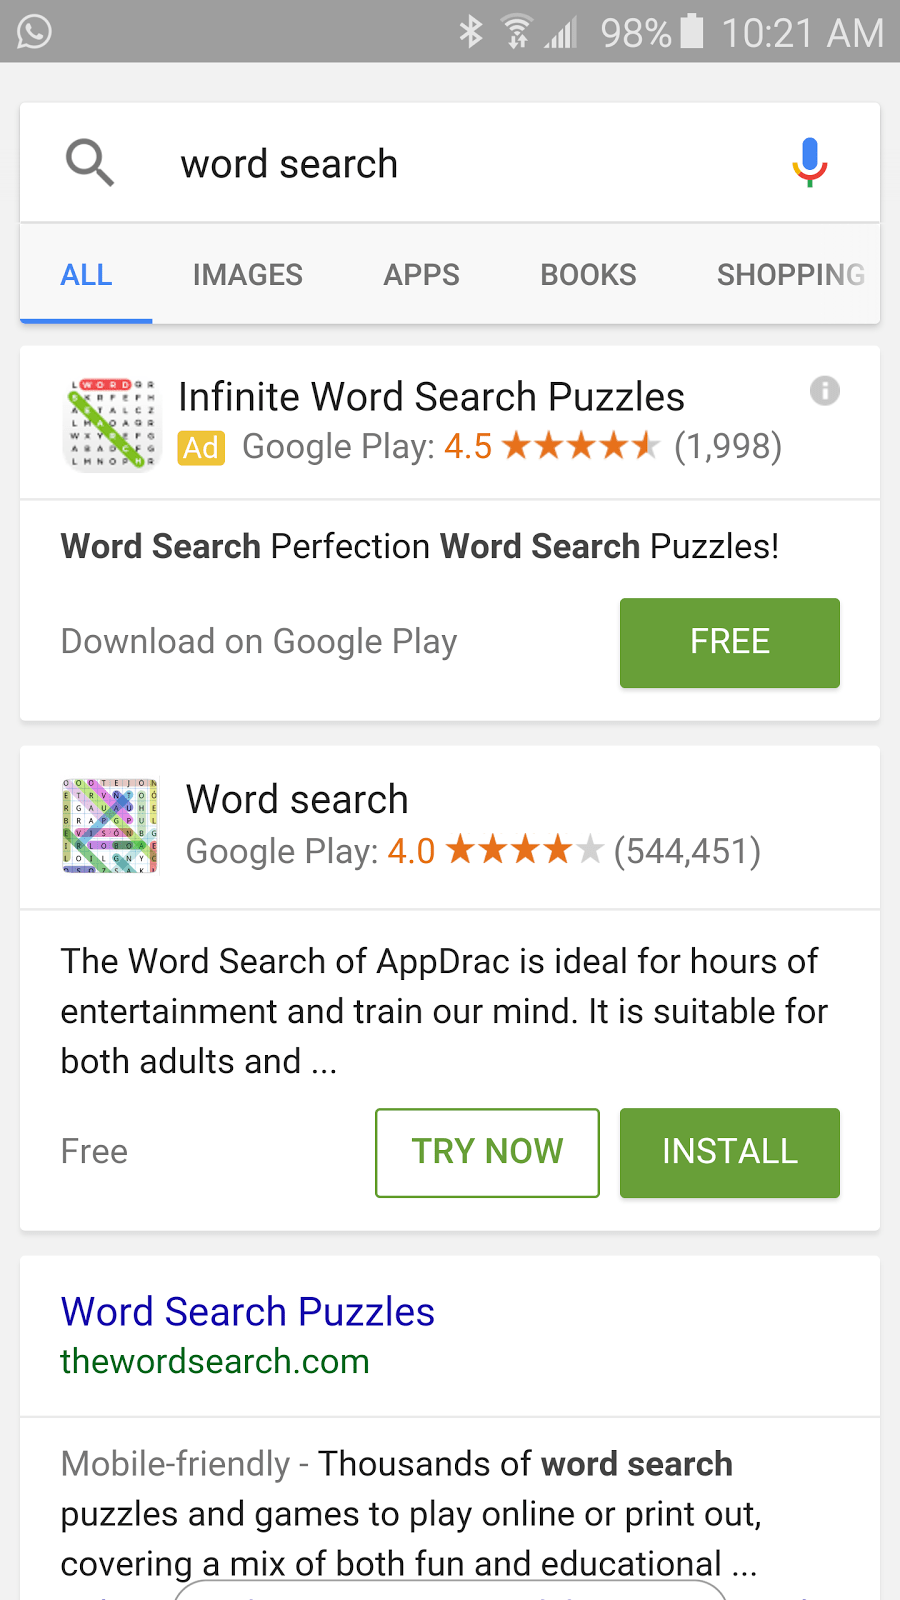 wordsearch-google-app-stream-try-now.png